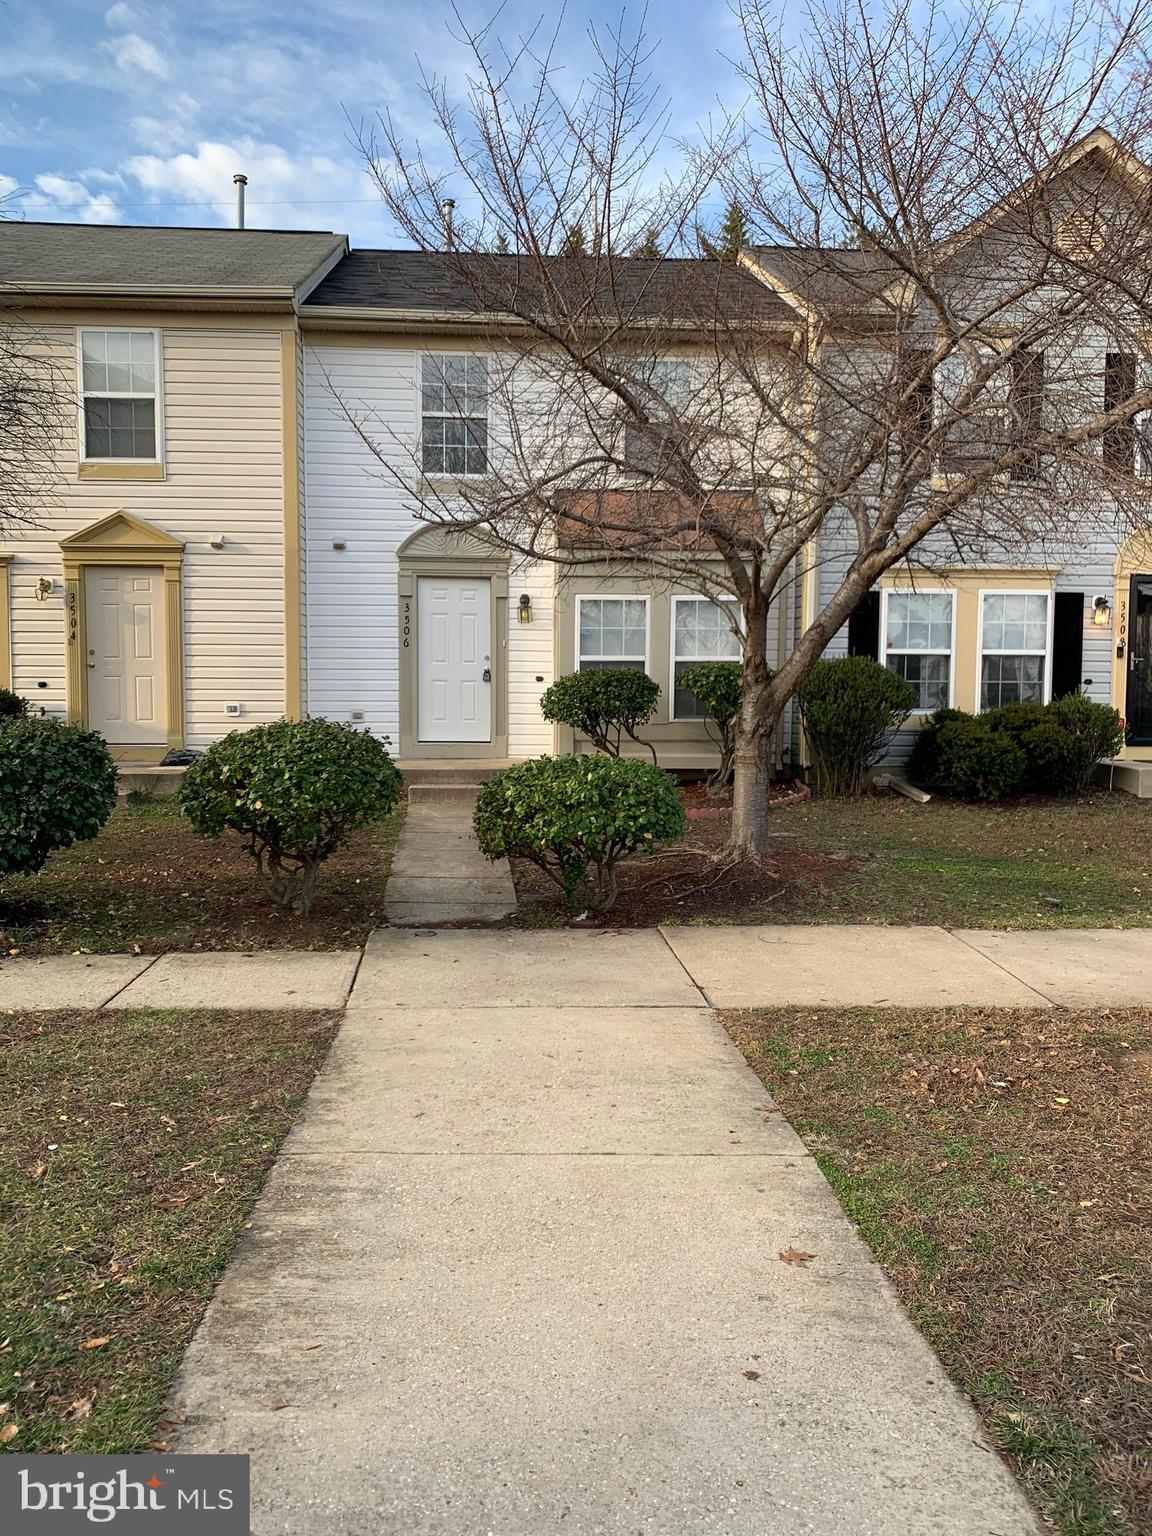 BEAUTIFULLY RENOVATED TOWNHOUSE! HOME OFFERS 3 BEDROOMS 1.5 BATHS,  ALL NEW KITCHEN  WITH  AND STAINLESS STEEL APPLIANCES.  NEW BATHROOMS,. NEW FLOORING THROUGHOUT.  AWESOME!